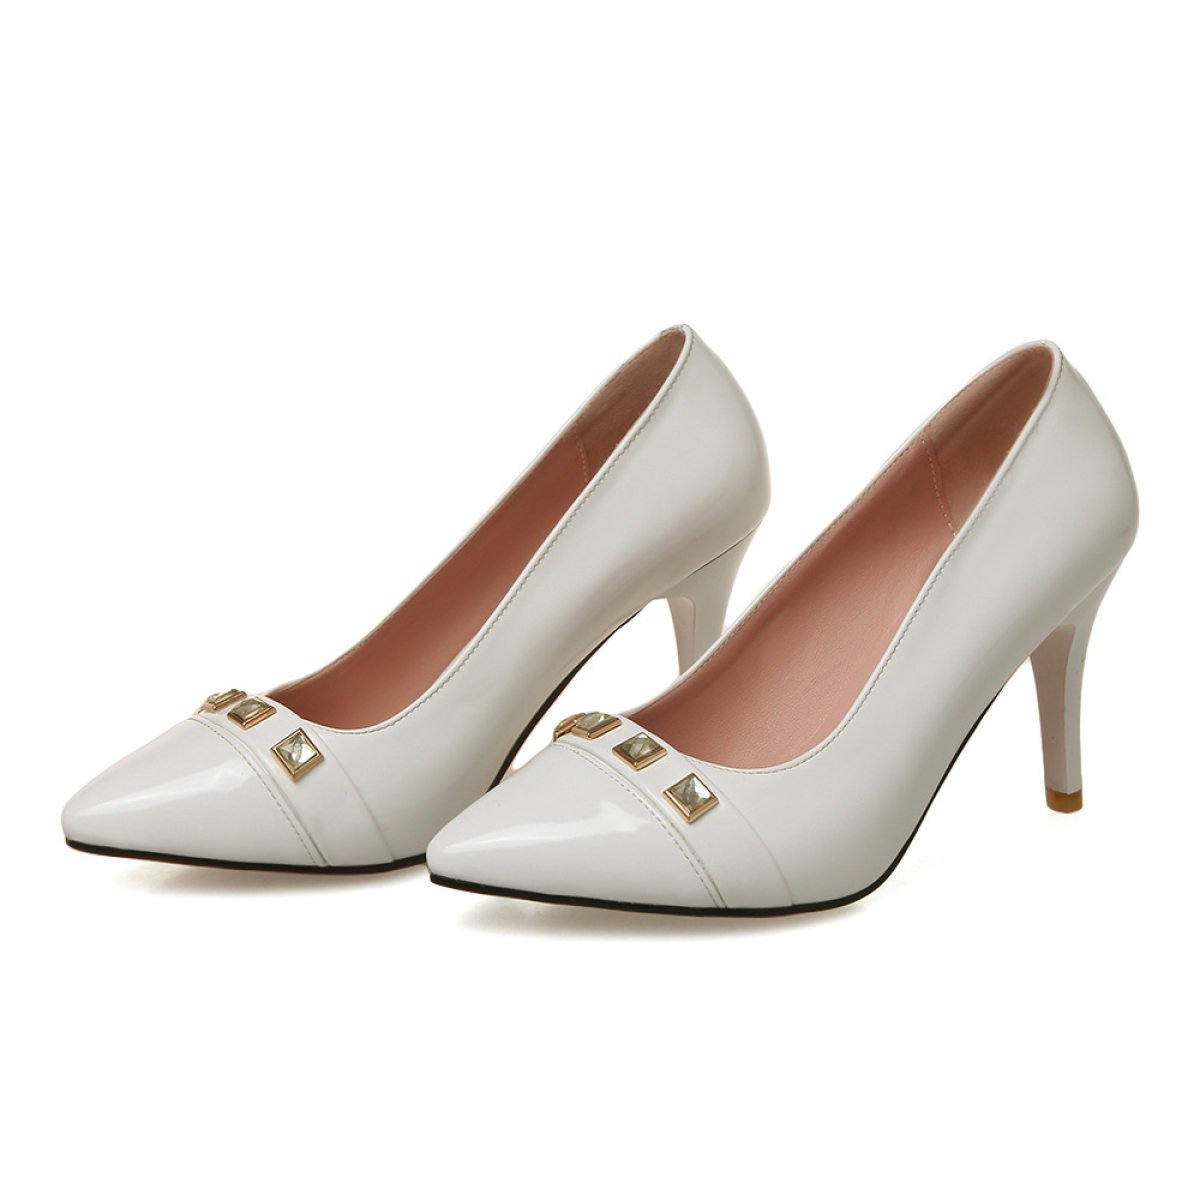 GSHGA Femmes Talons Chaussures Pointues Talons Chaussures 19276 Rivets Chaussures white 76c93eb - shopssong.space